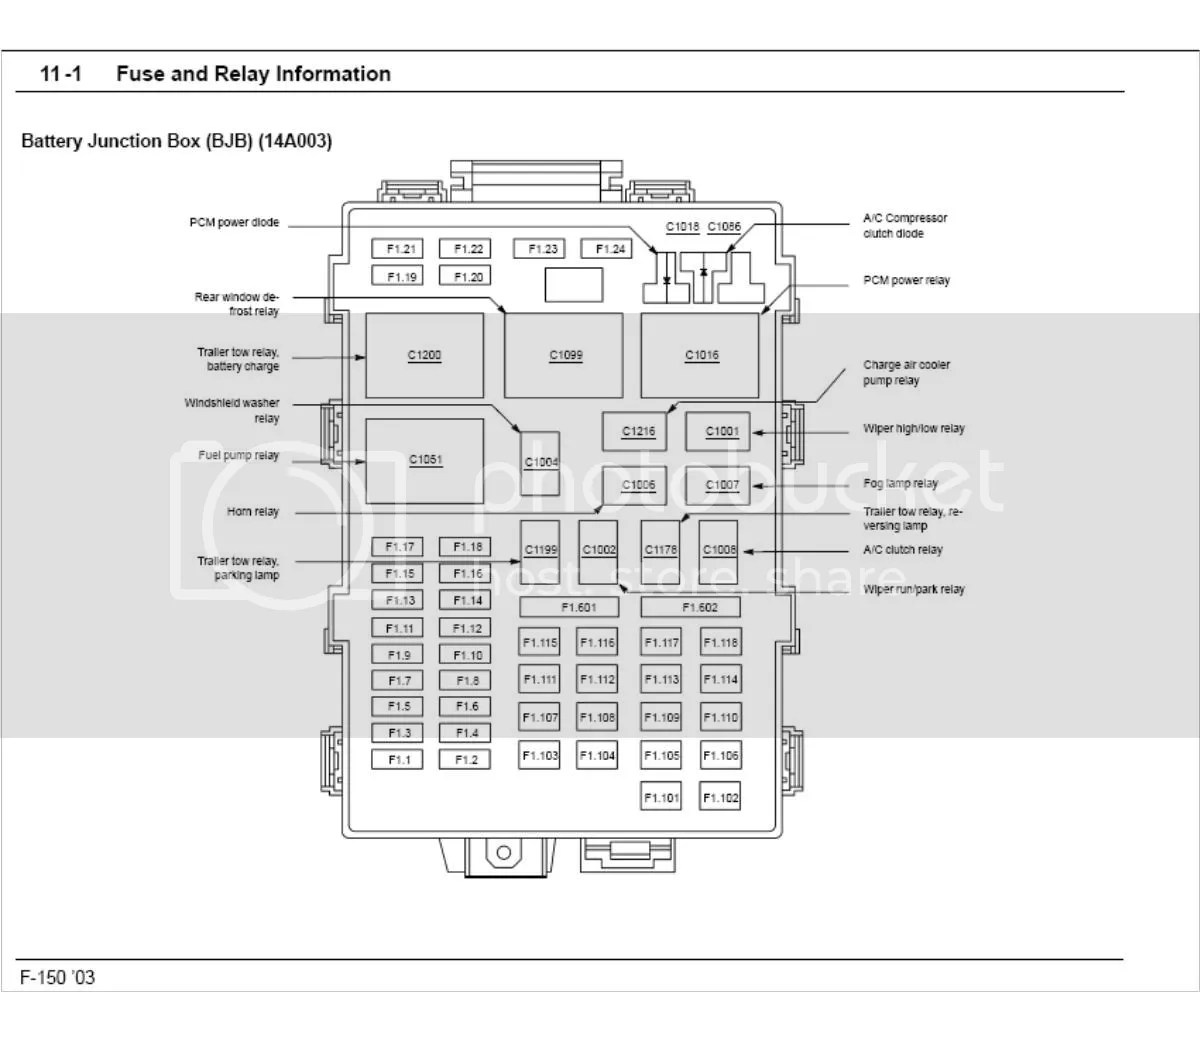 hight resolution of fuse diagram for 2003 f150 4 6l ford f150 forum rh fordf150 net 2013 f 150